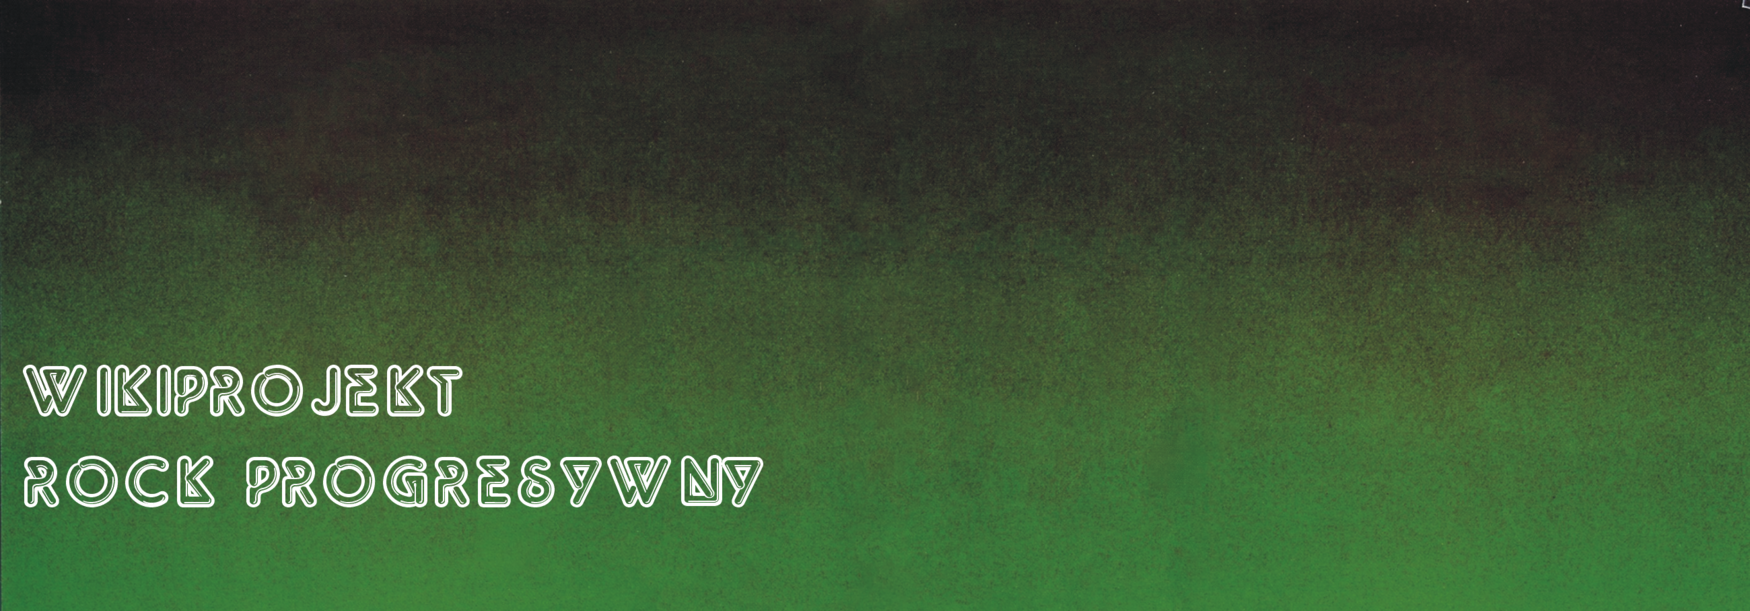 Green gradient Wikiprojekt Rock progresywny.PNG